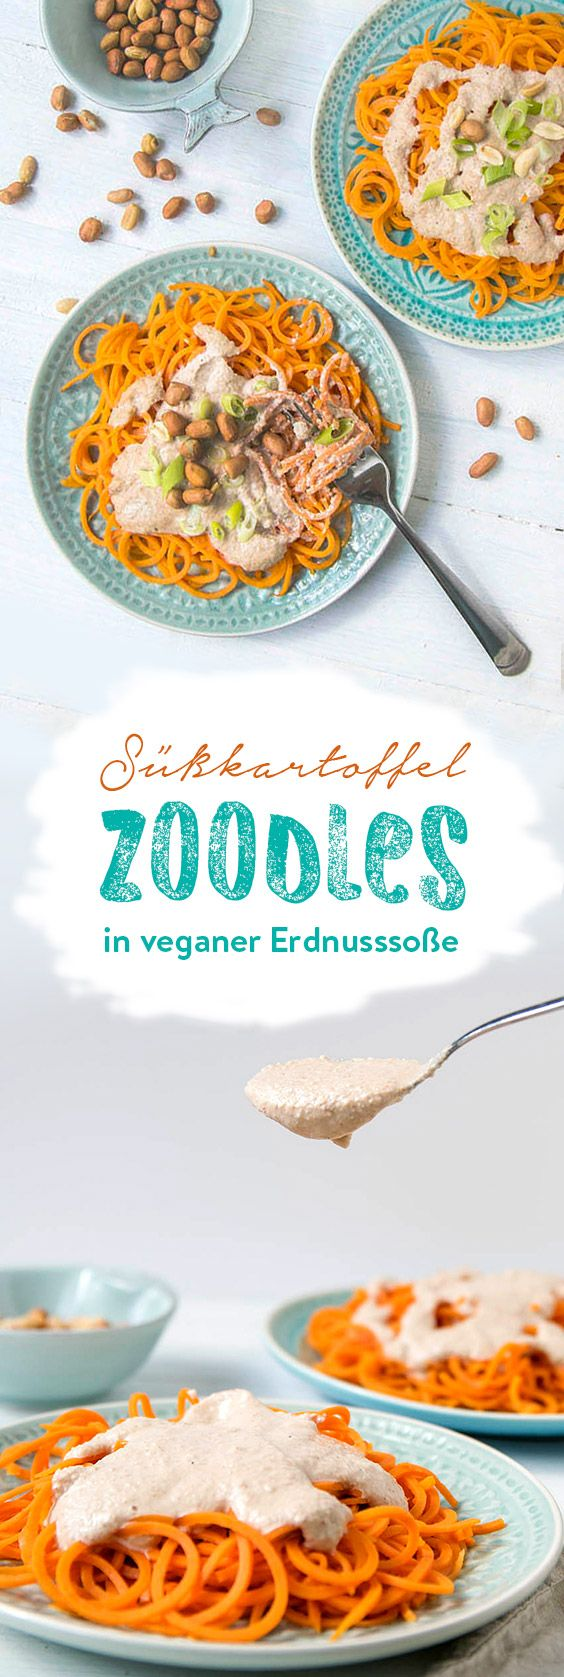 Photo of Zoodles with a creamy peanut sauce